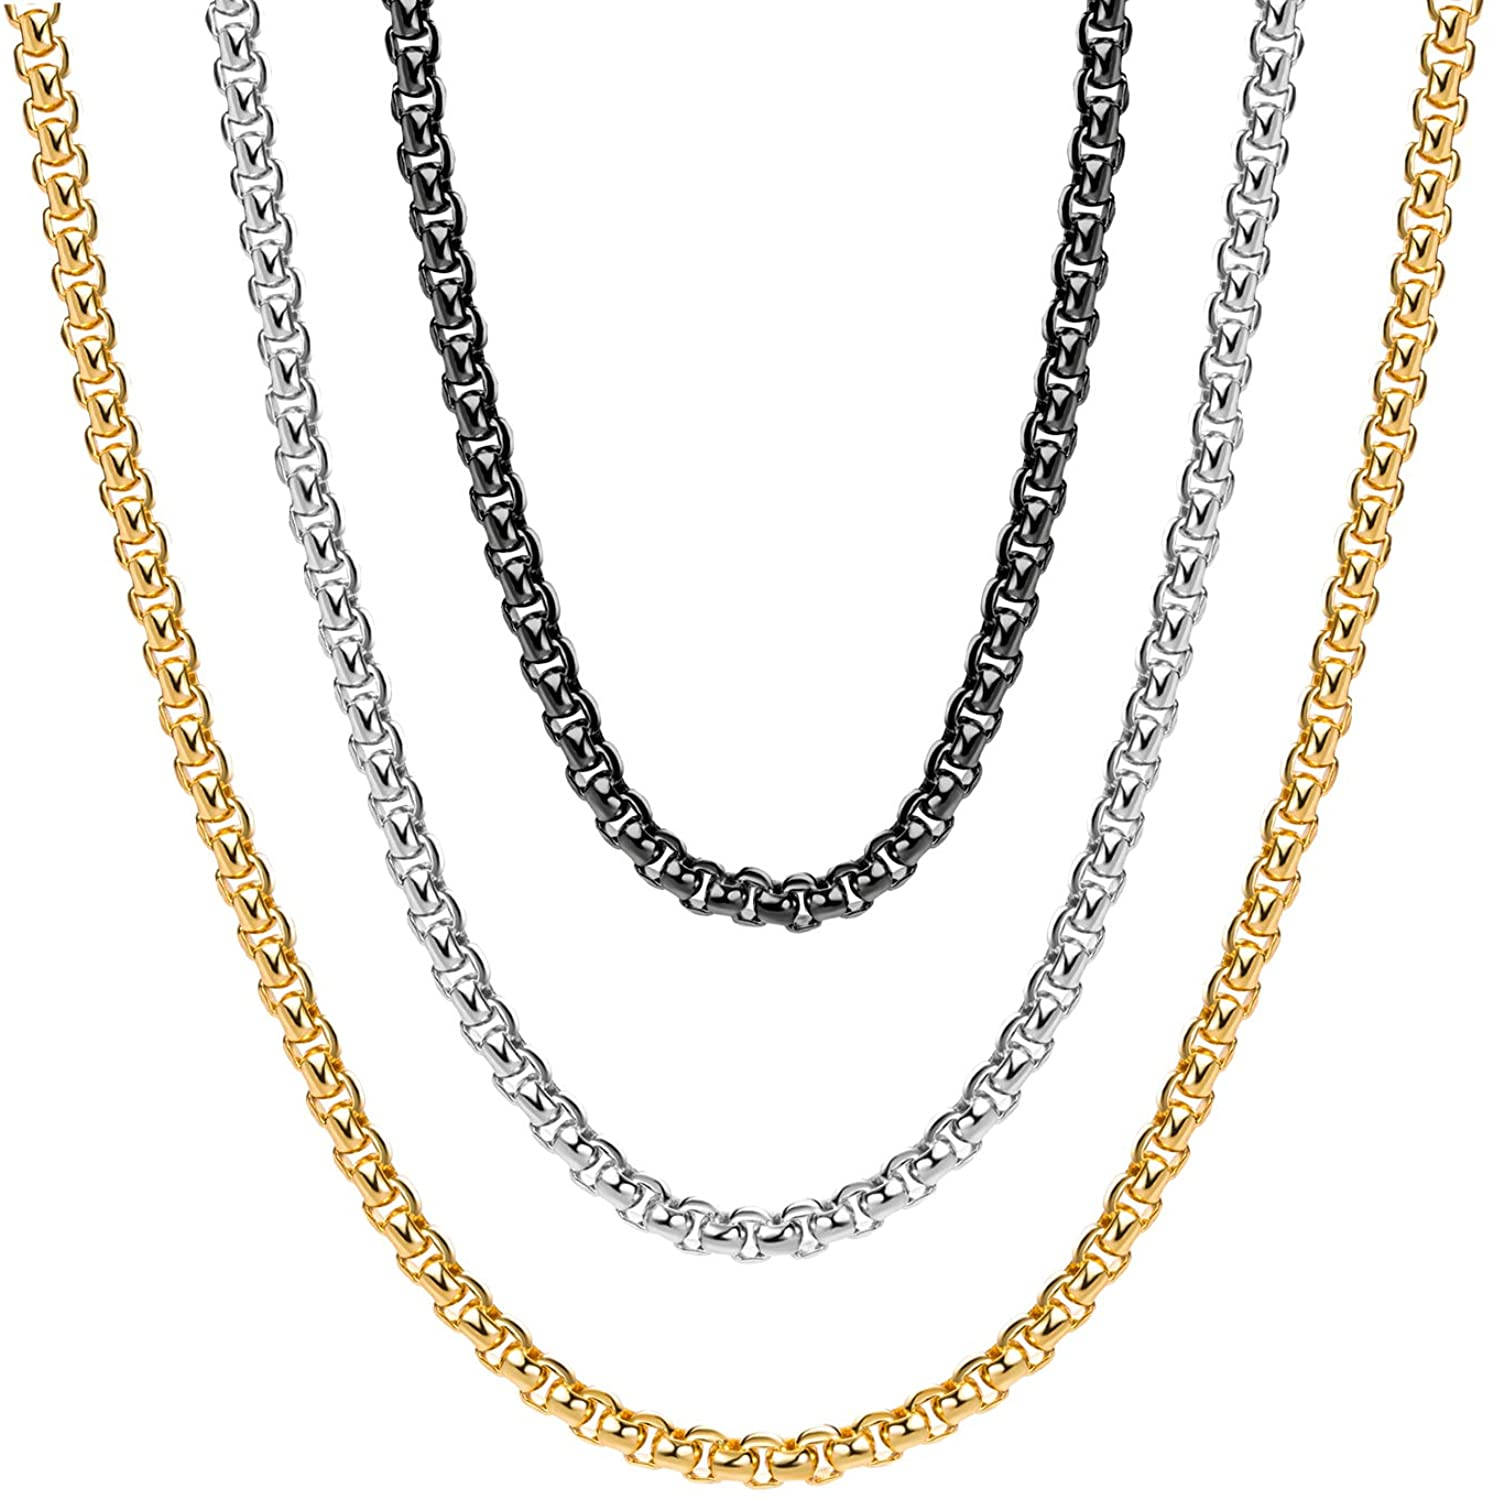 Monily 2-7mm 16-38In Square Rolo Stainless Steel Chain Necklace Round Box Necklace Men Women Jewellery